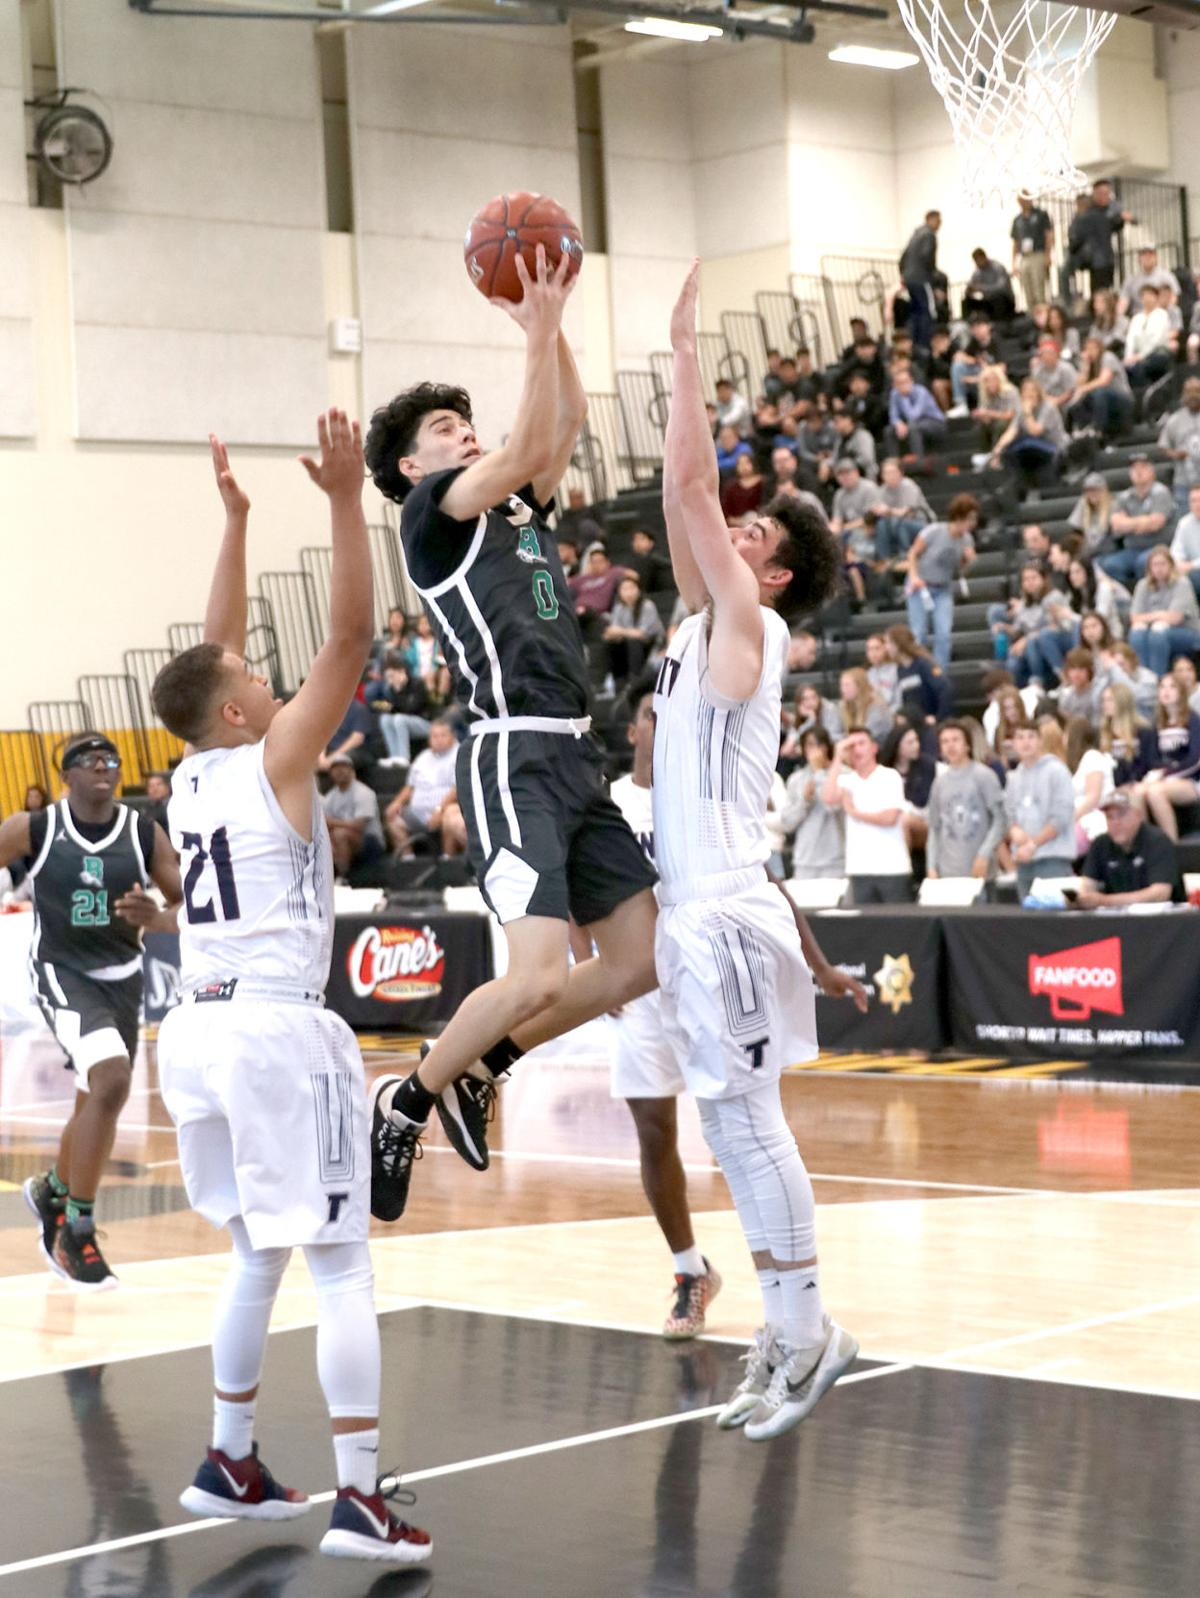 Bronco Richard Espinoza delivers two of his eight points as Banning wins CIF title.